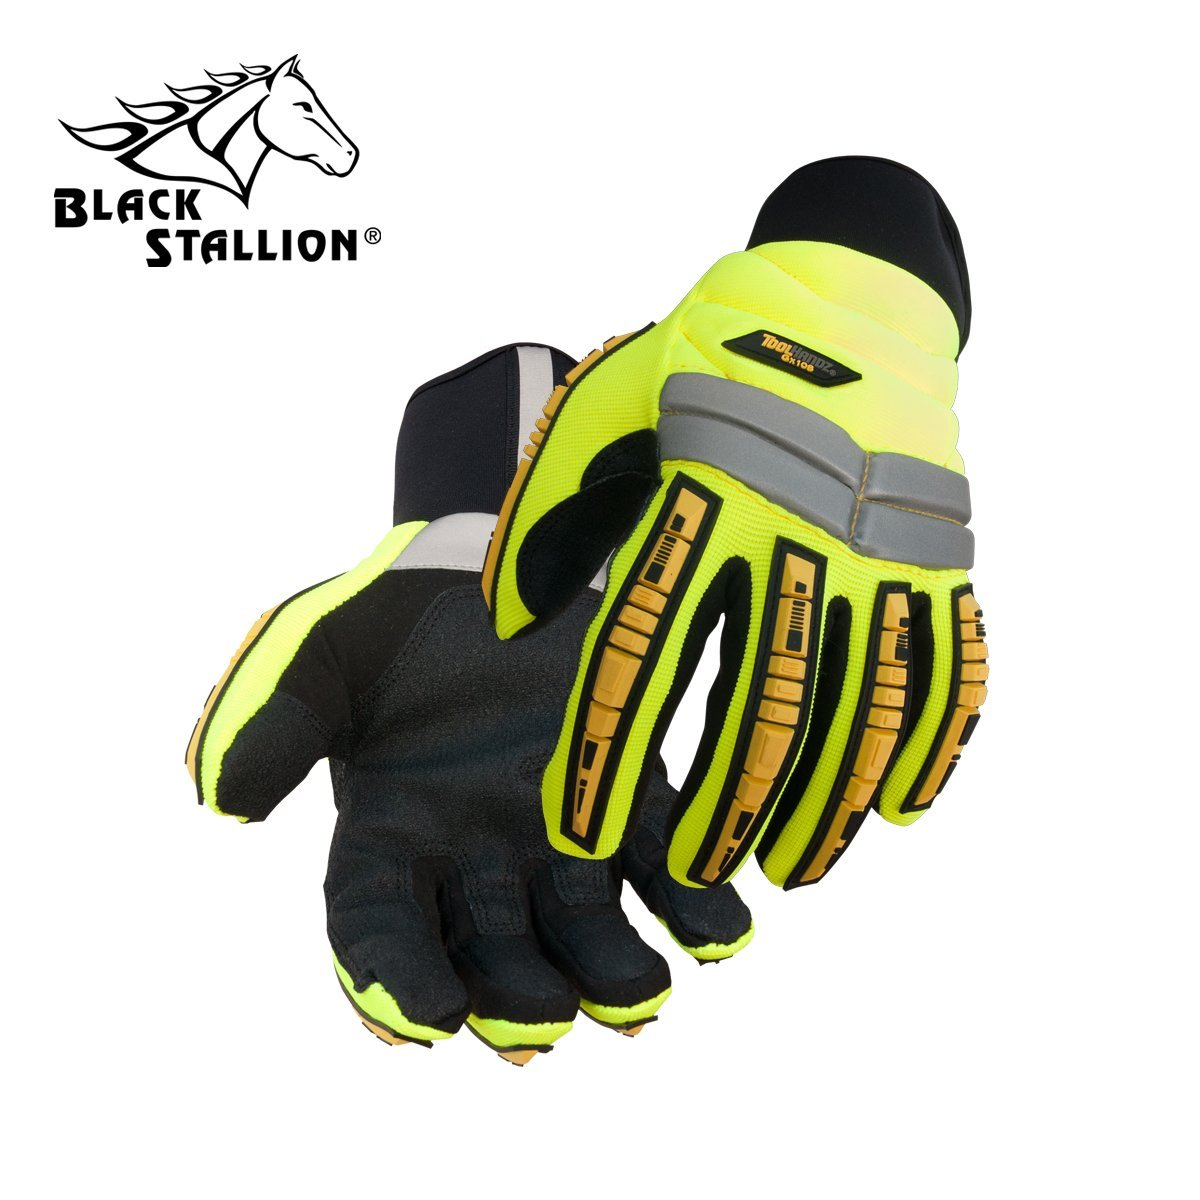 REVCO BLACK STALLION - GX108 TOOLHANDZ SYNTHETIC LEATHER IMPACT MECHANIC'S GLOVES - SIZE: LARGE - CASE OF: 120 PAIR